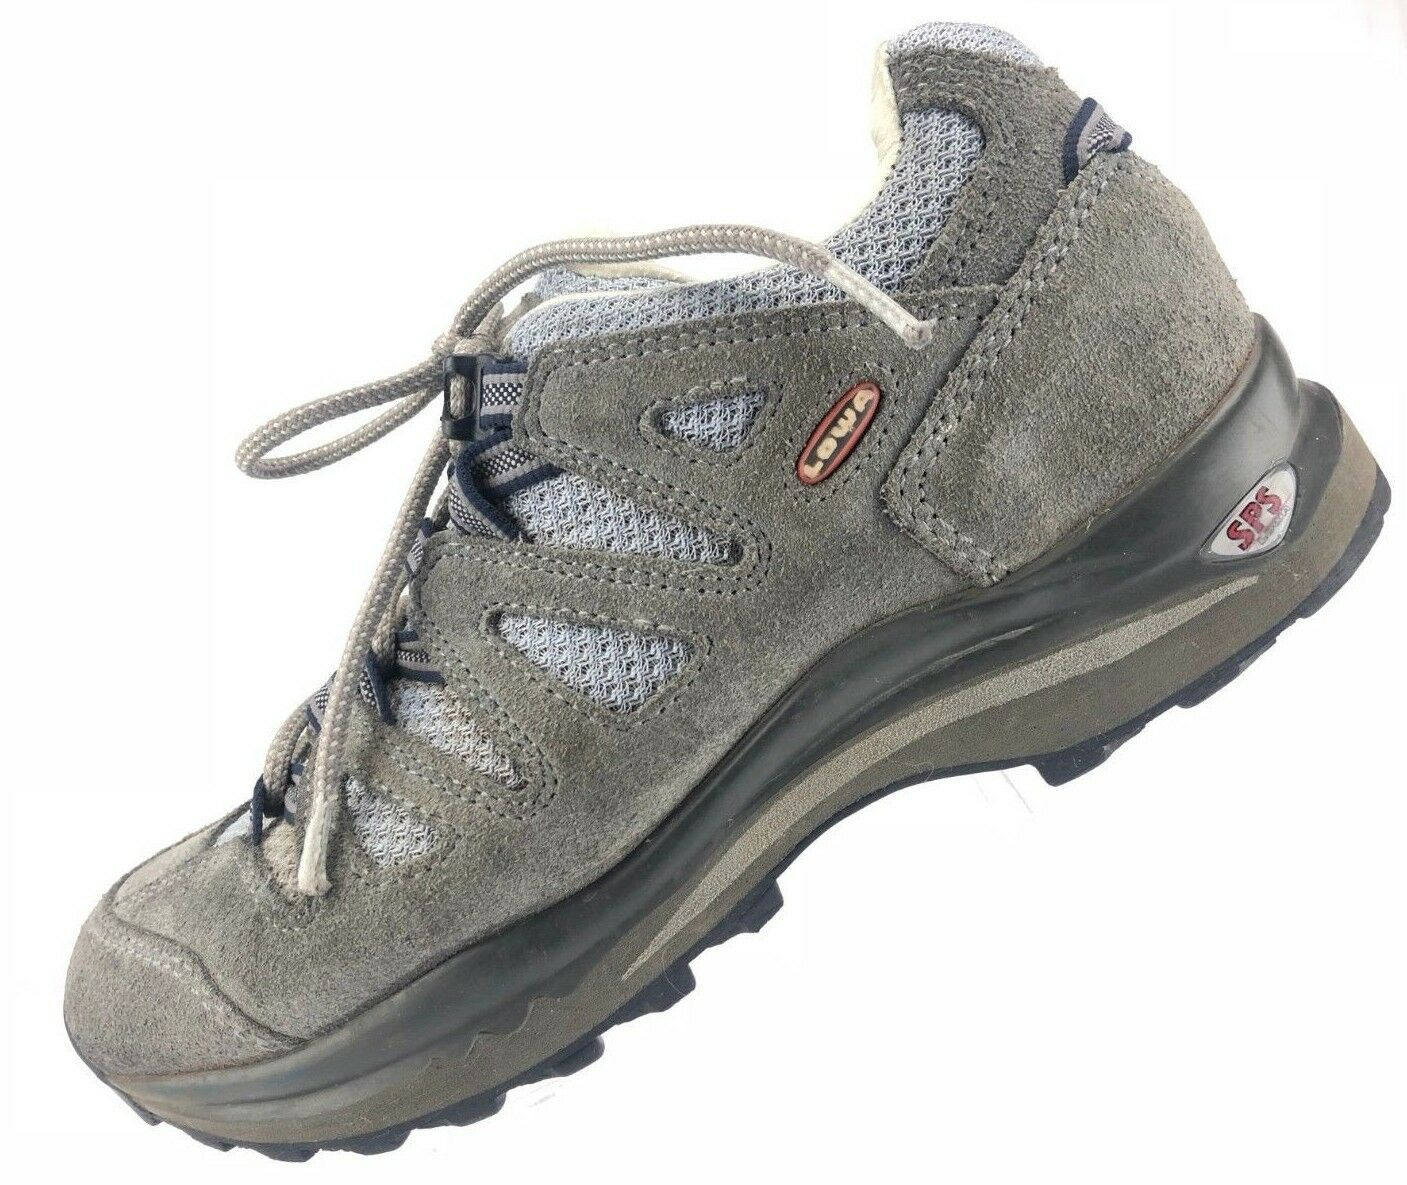 Lowa SPS Hiking shoes - G   Lace Up Trail Running Sneakers  Women's Sz 6.5  hot sports